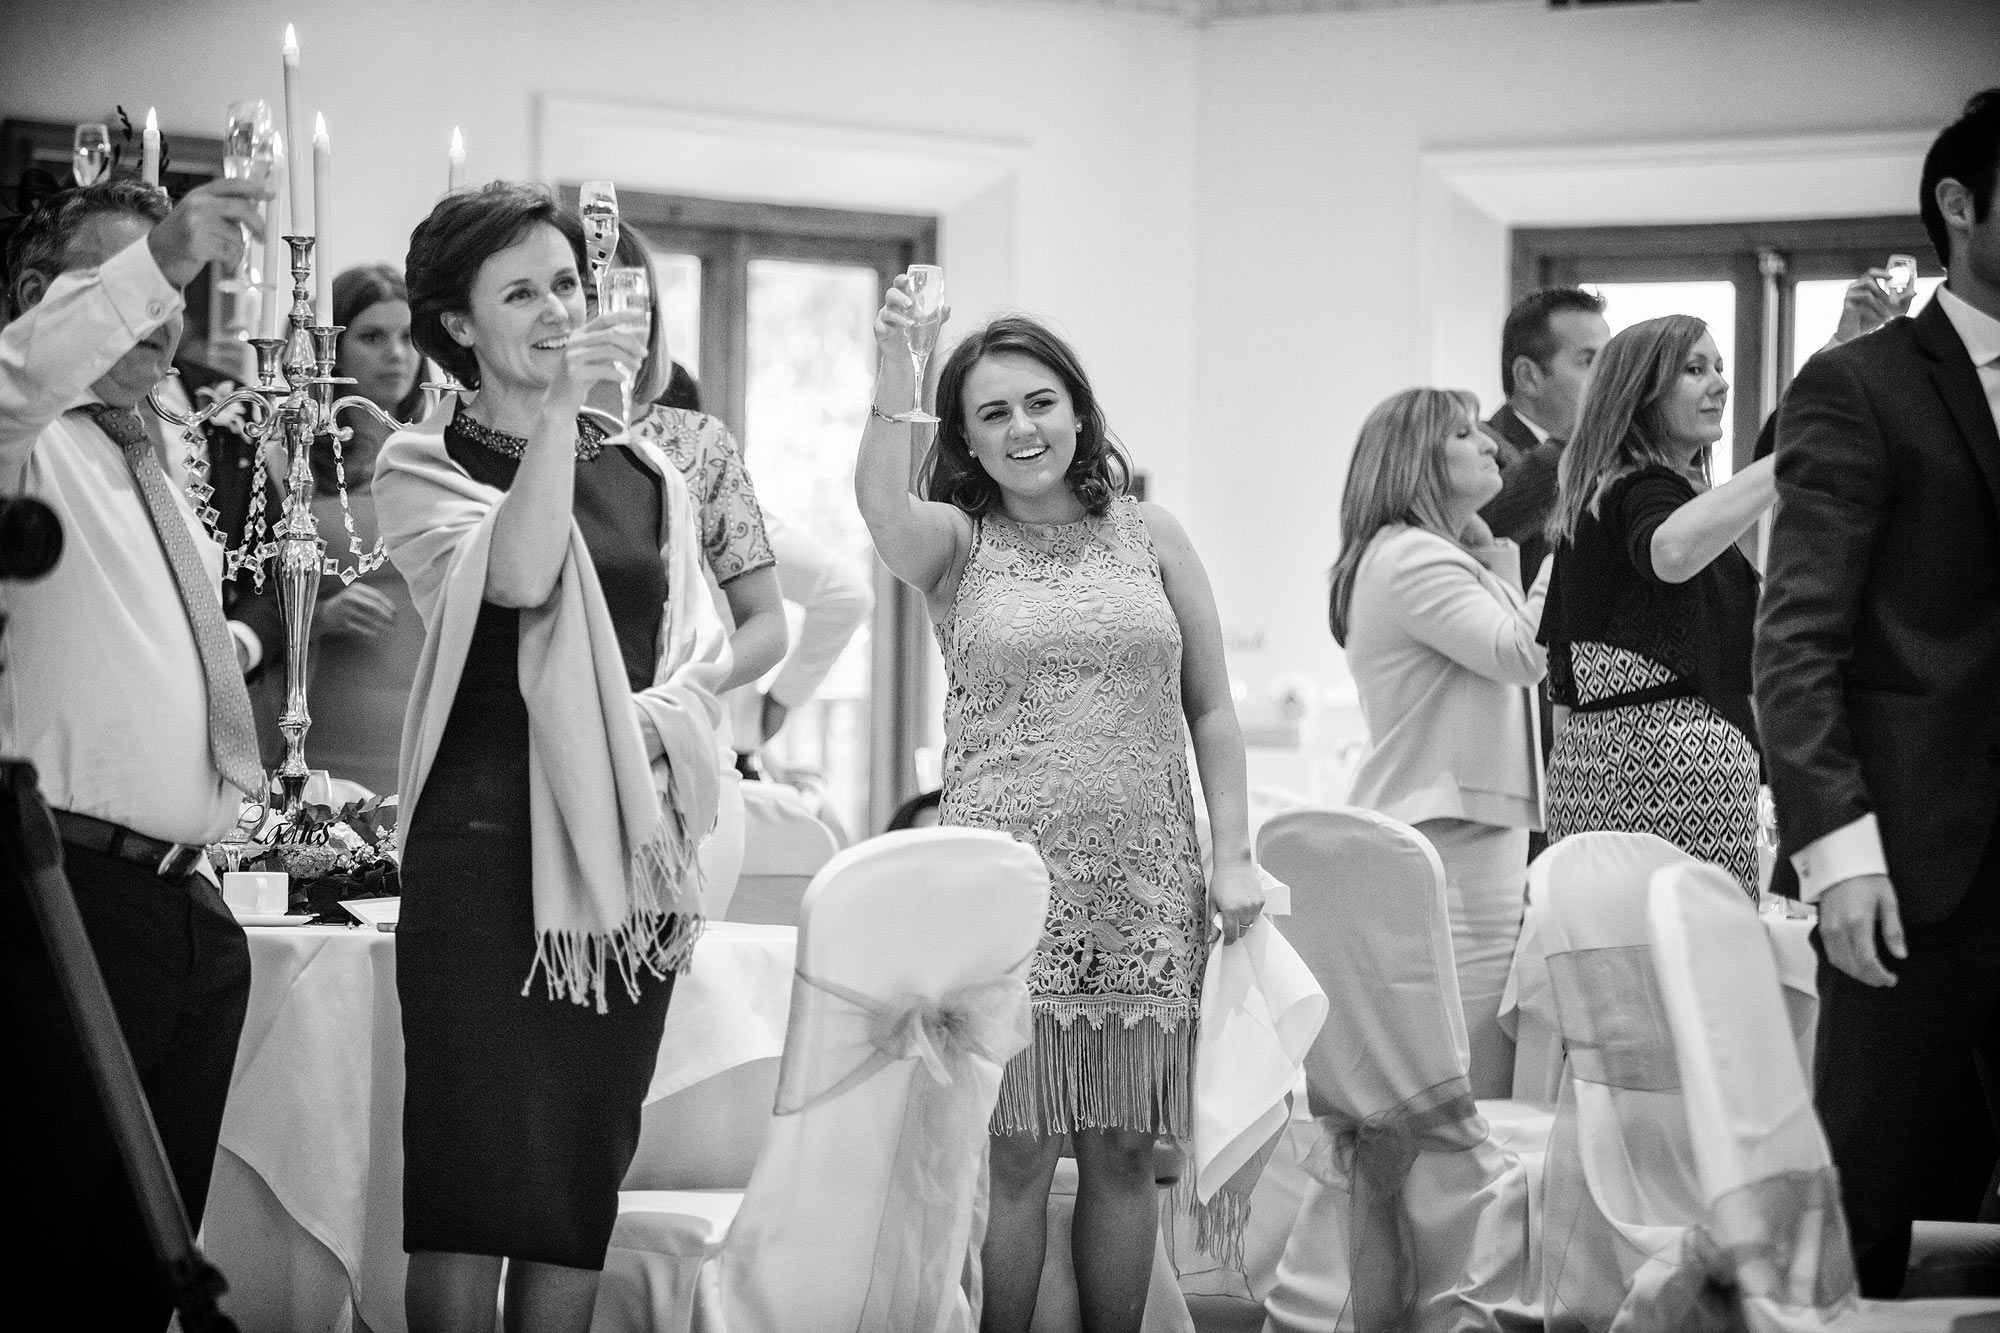 reportage documentary wedding photographer Stock Brook Country Club